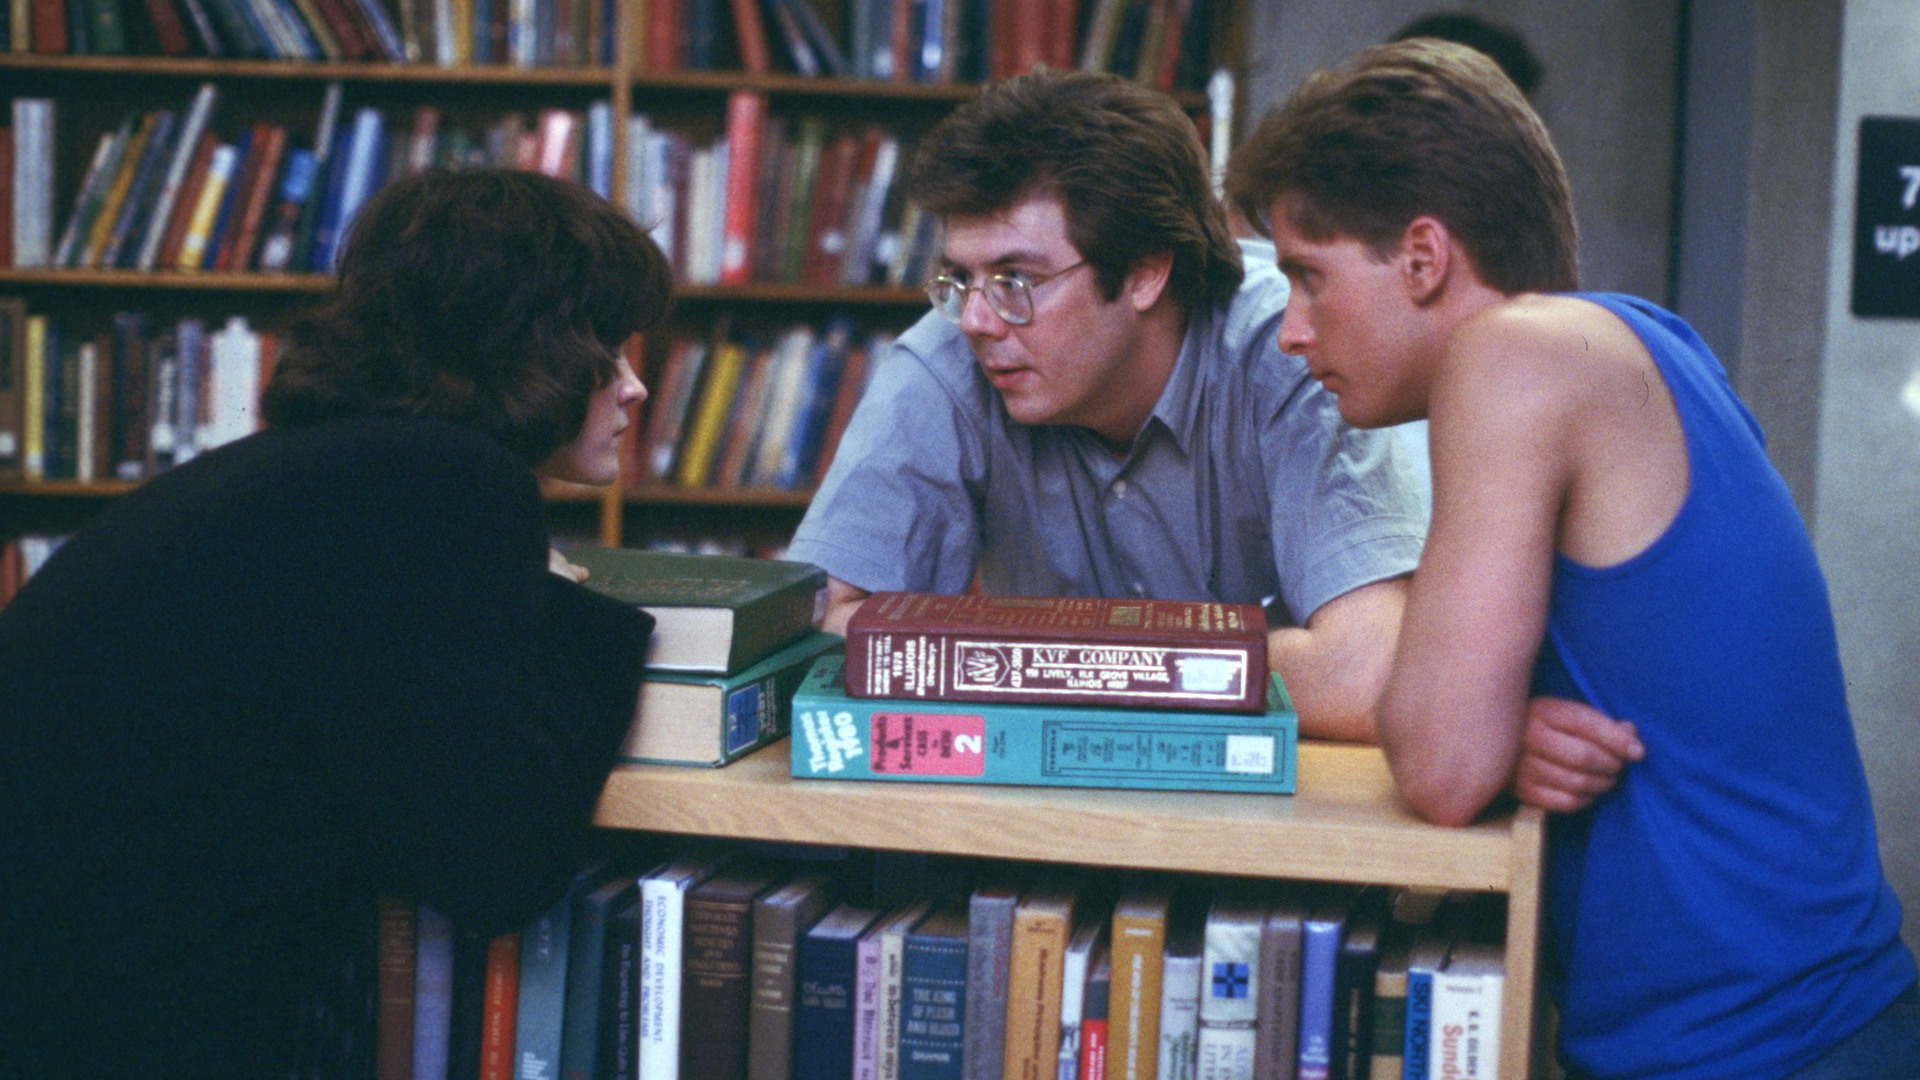 John Hughes with Ally Sheedy and Emilio Estevez on the set of The Breakfast Club